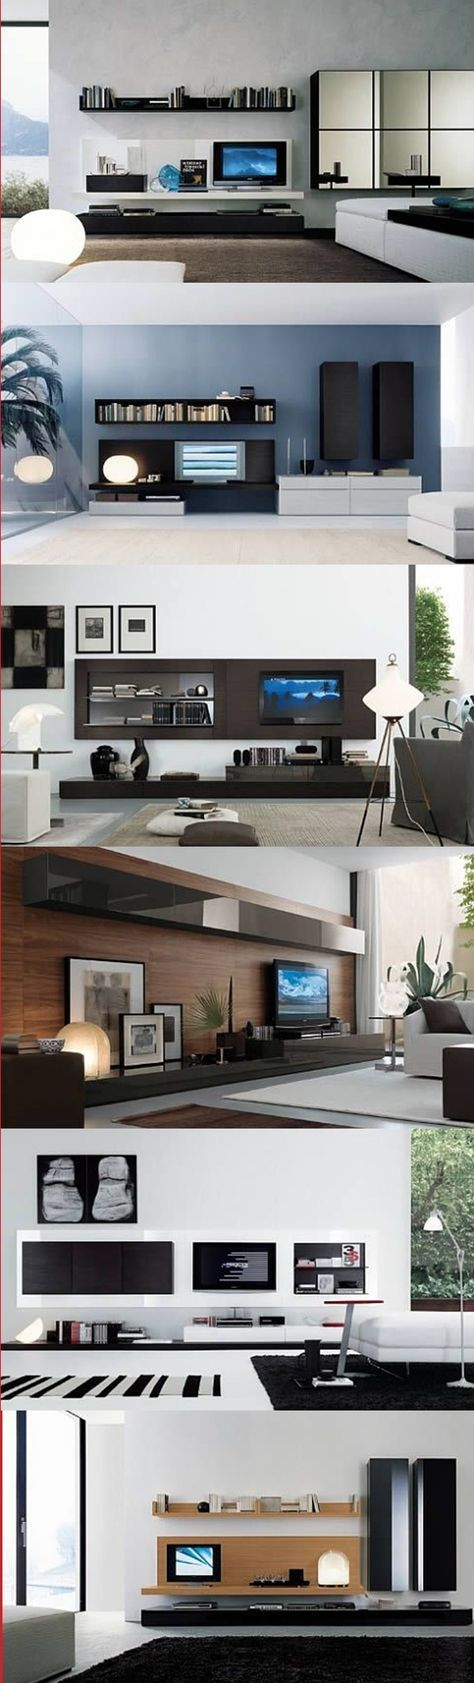 Tv wall units design ideas pictures remodel and decor page 11